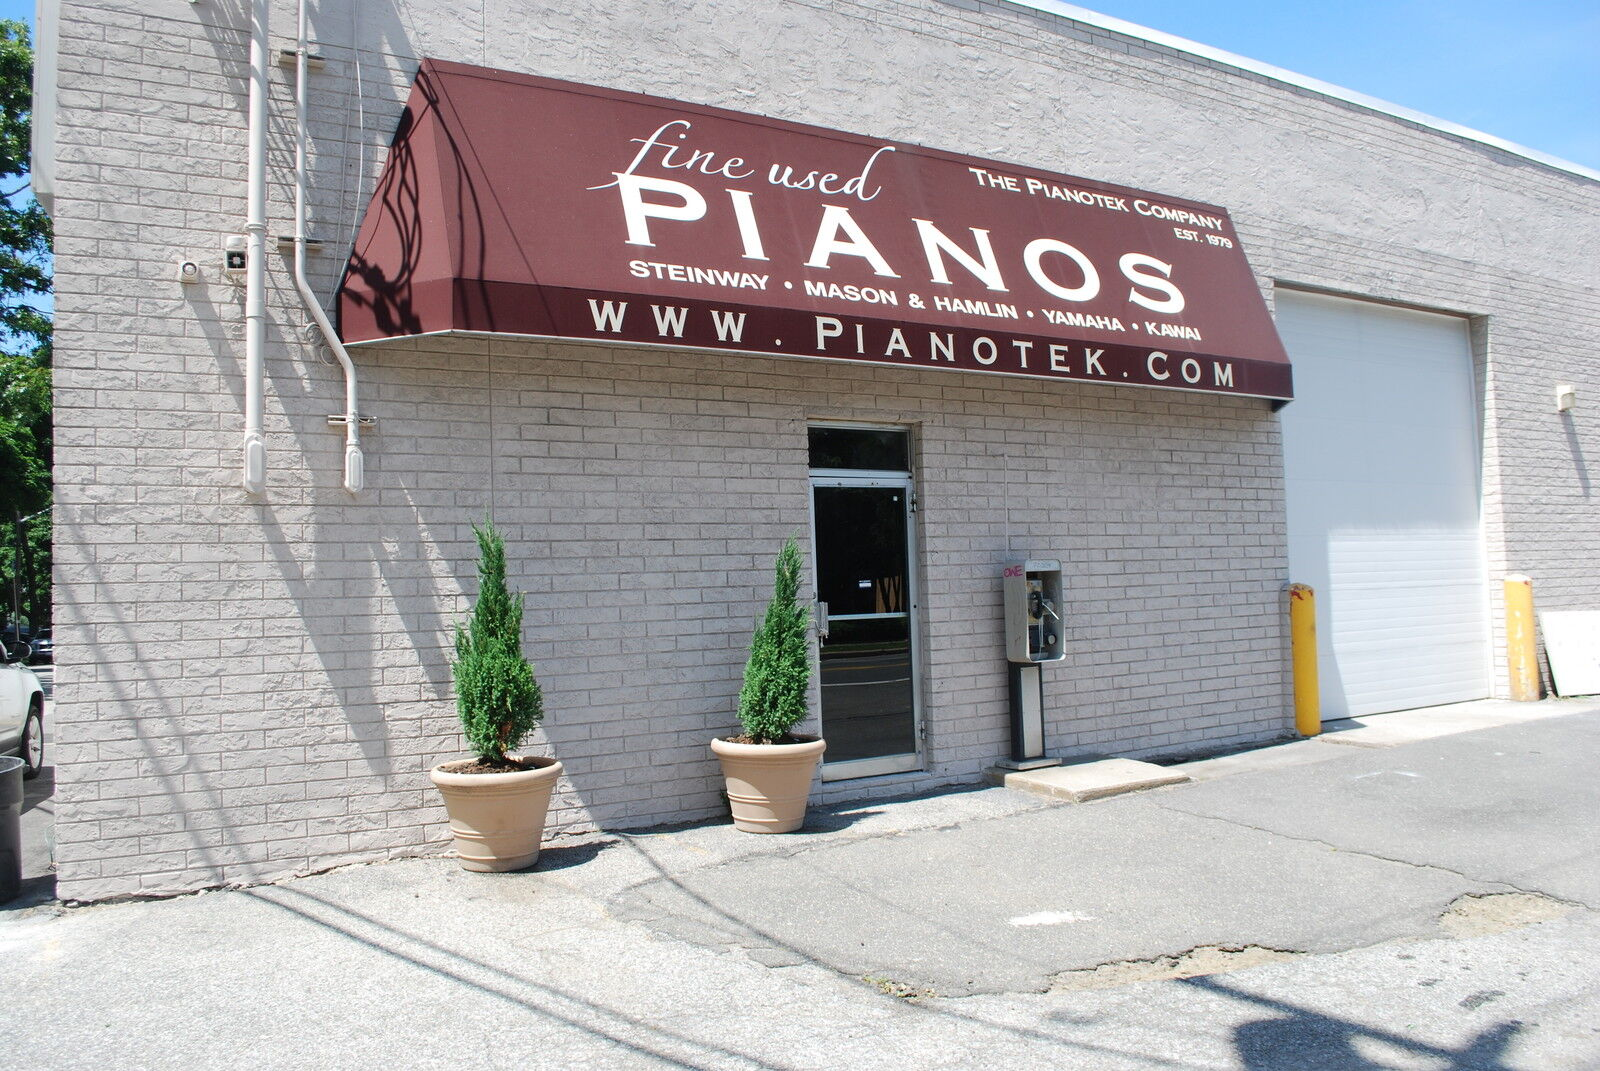 The Pianotek Company